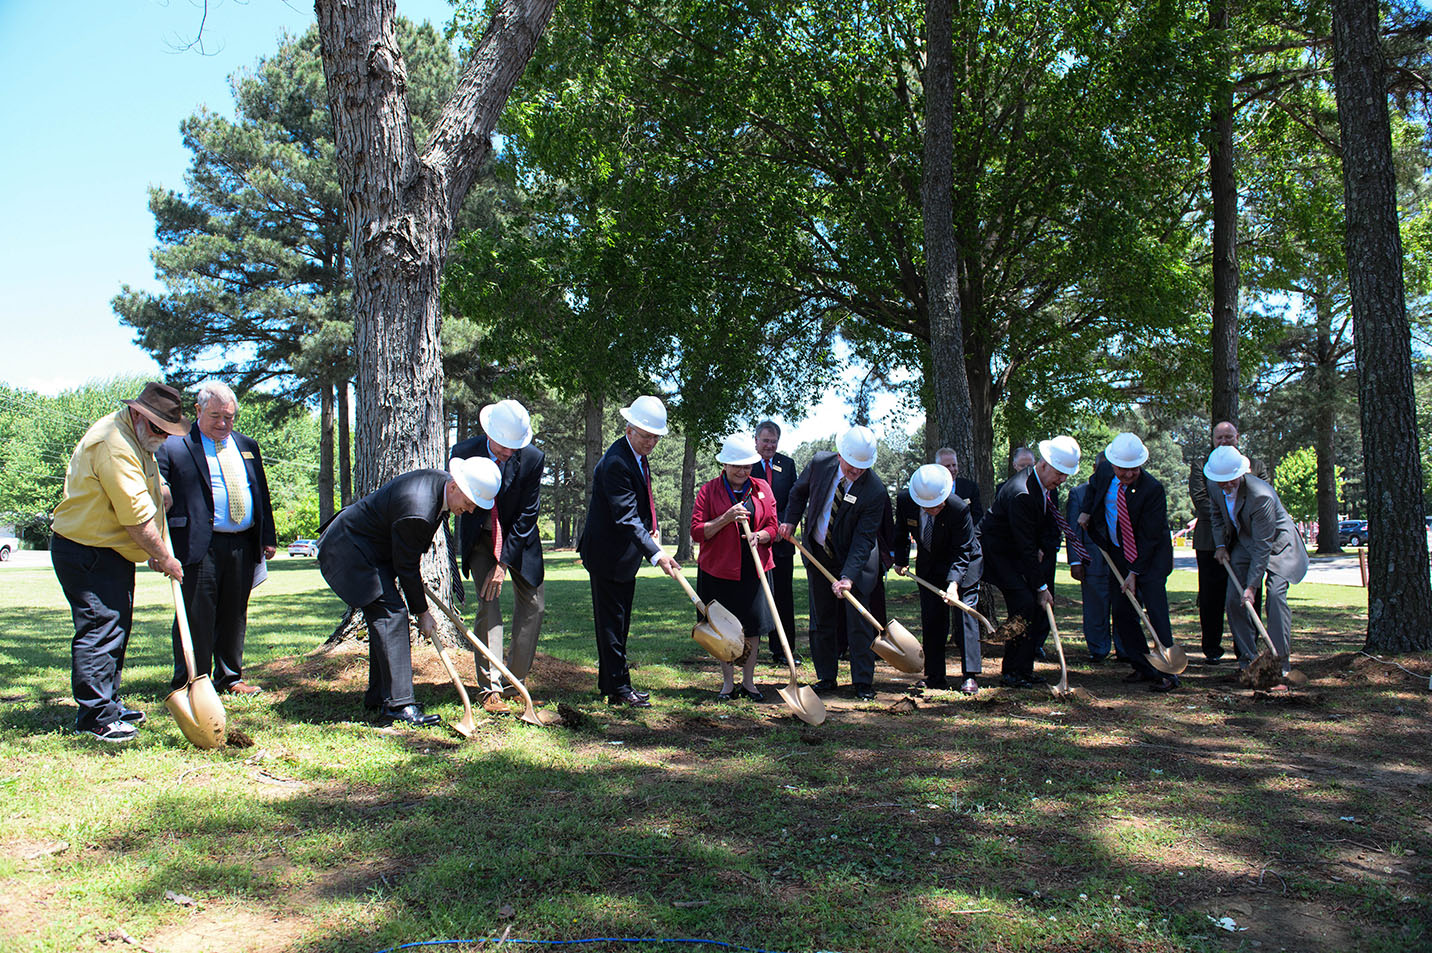 This is a photo of Harding Academy breaking ground on their new building project.